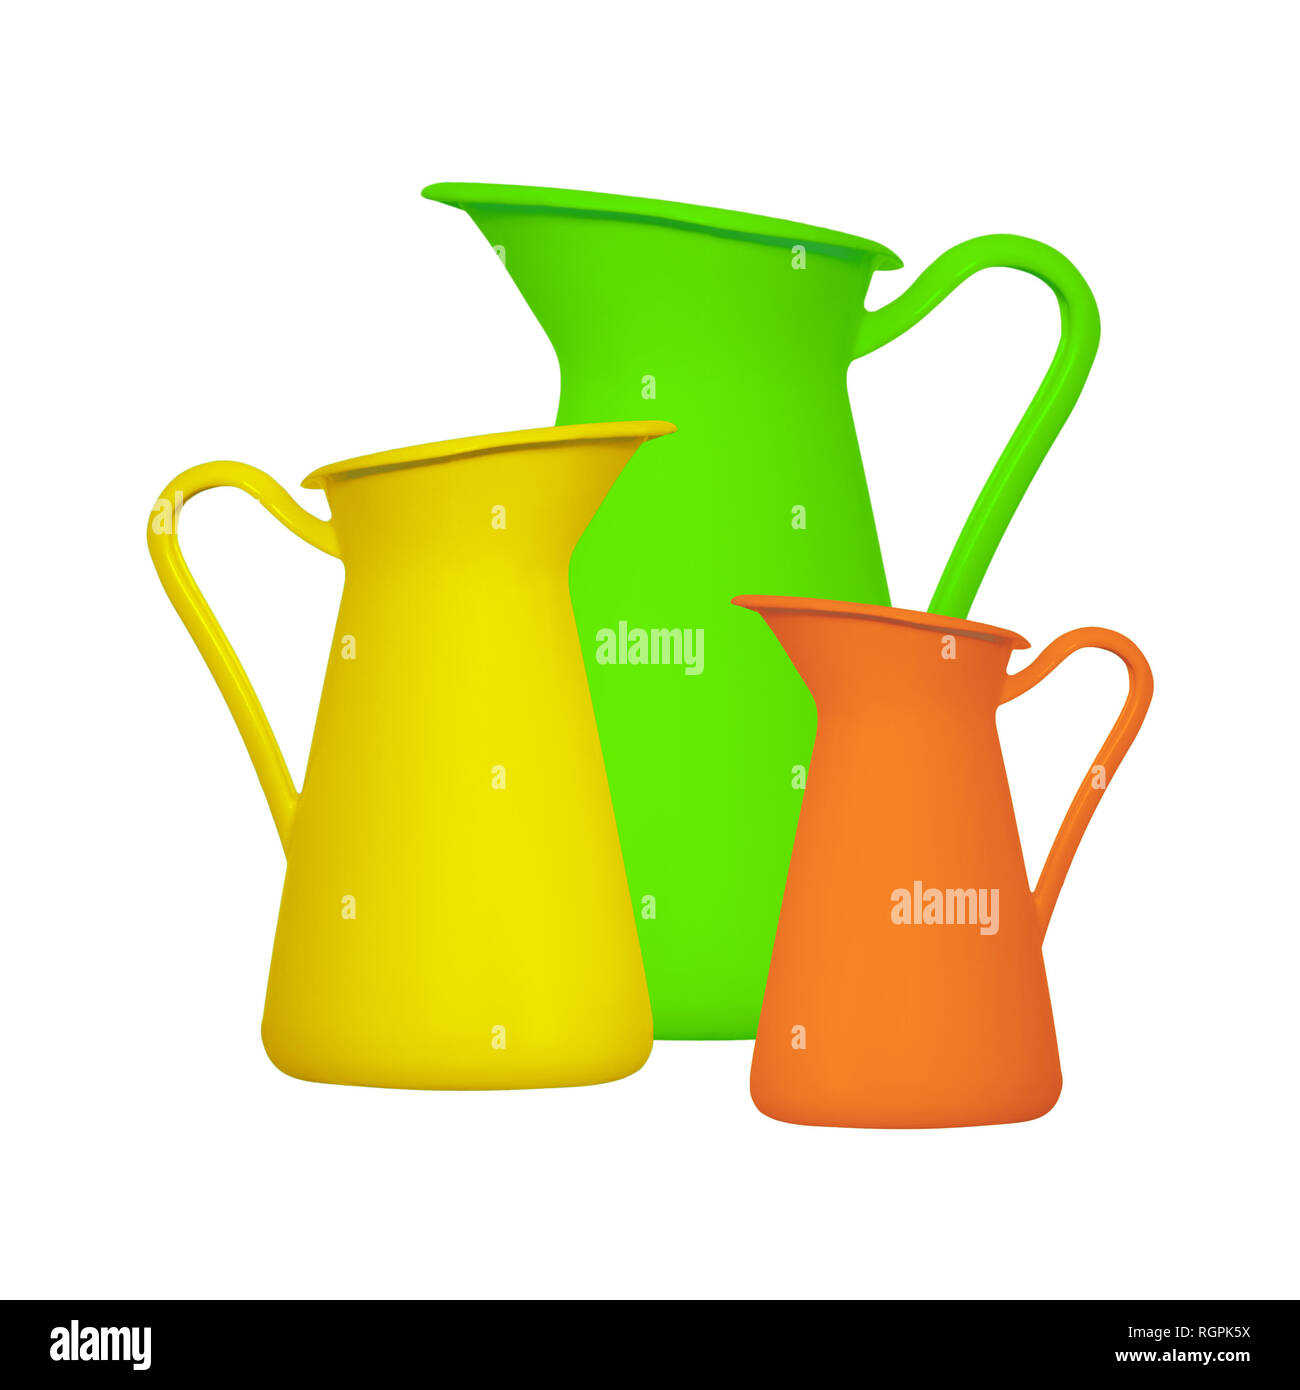 Storage for liquids - Green orange and yellow jug ewer on a white background. Isolated Stock Photo